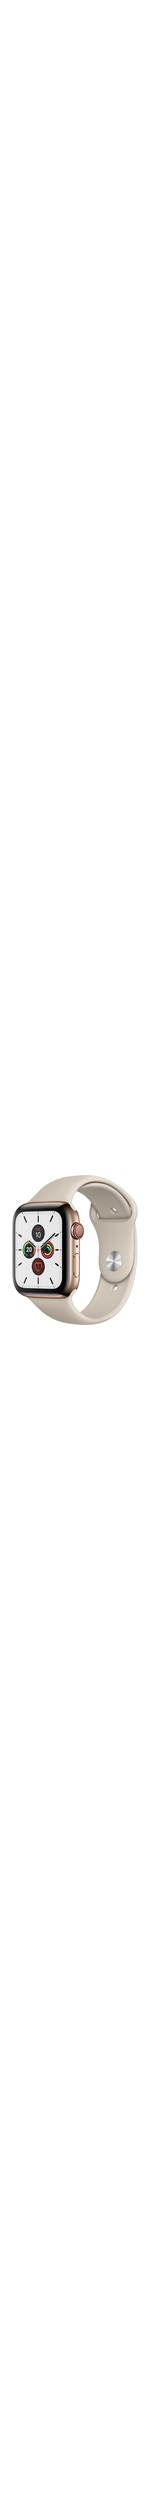 Apple Watch Series 5 Smart Watch - Wrist Wearable - Gold Case - Stone Band - Stainless Steel Case - Cellular Phone Capability - LTE, UMTS